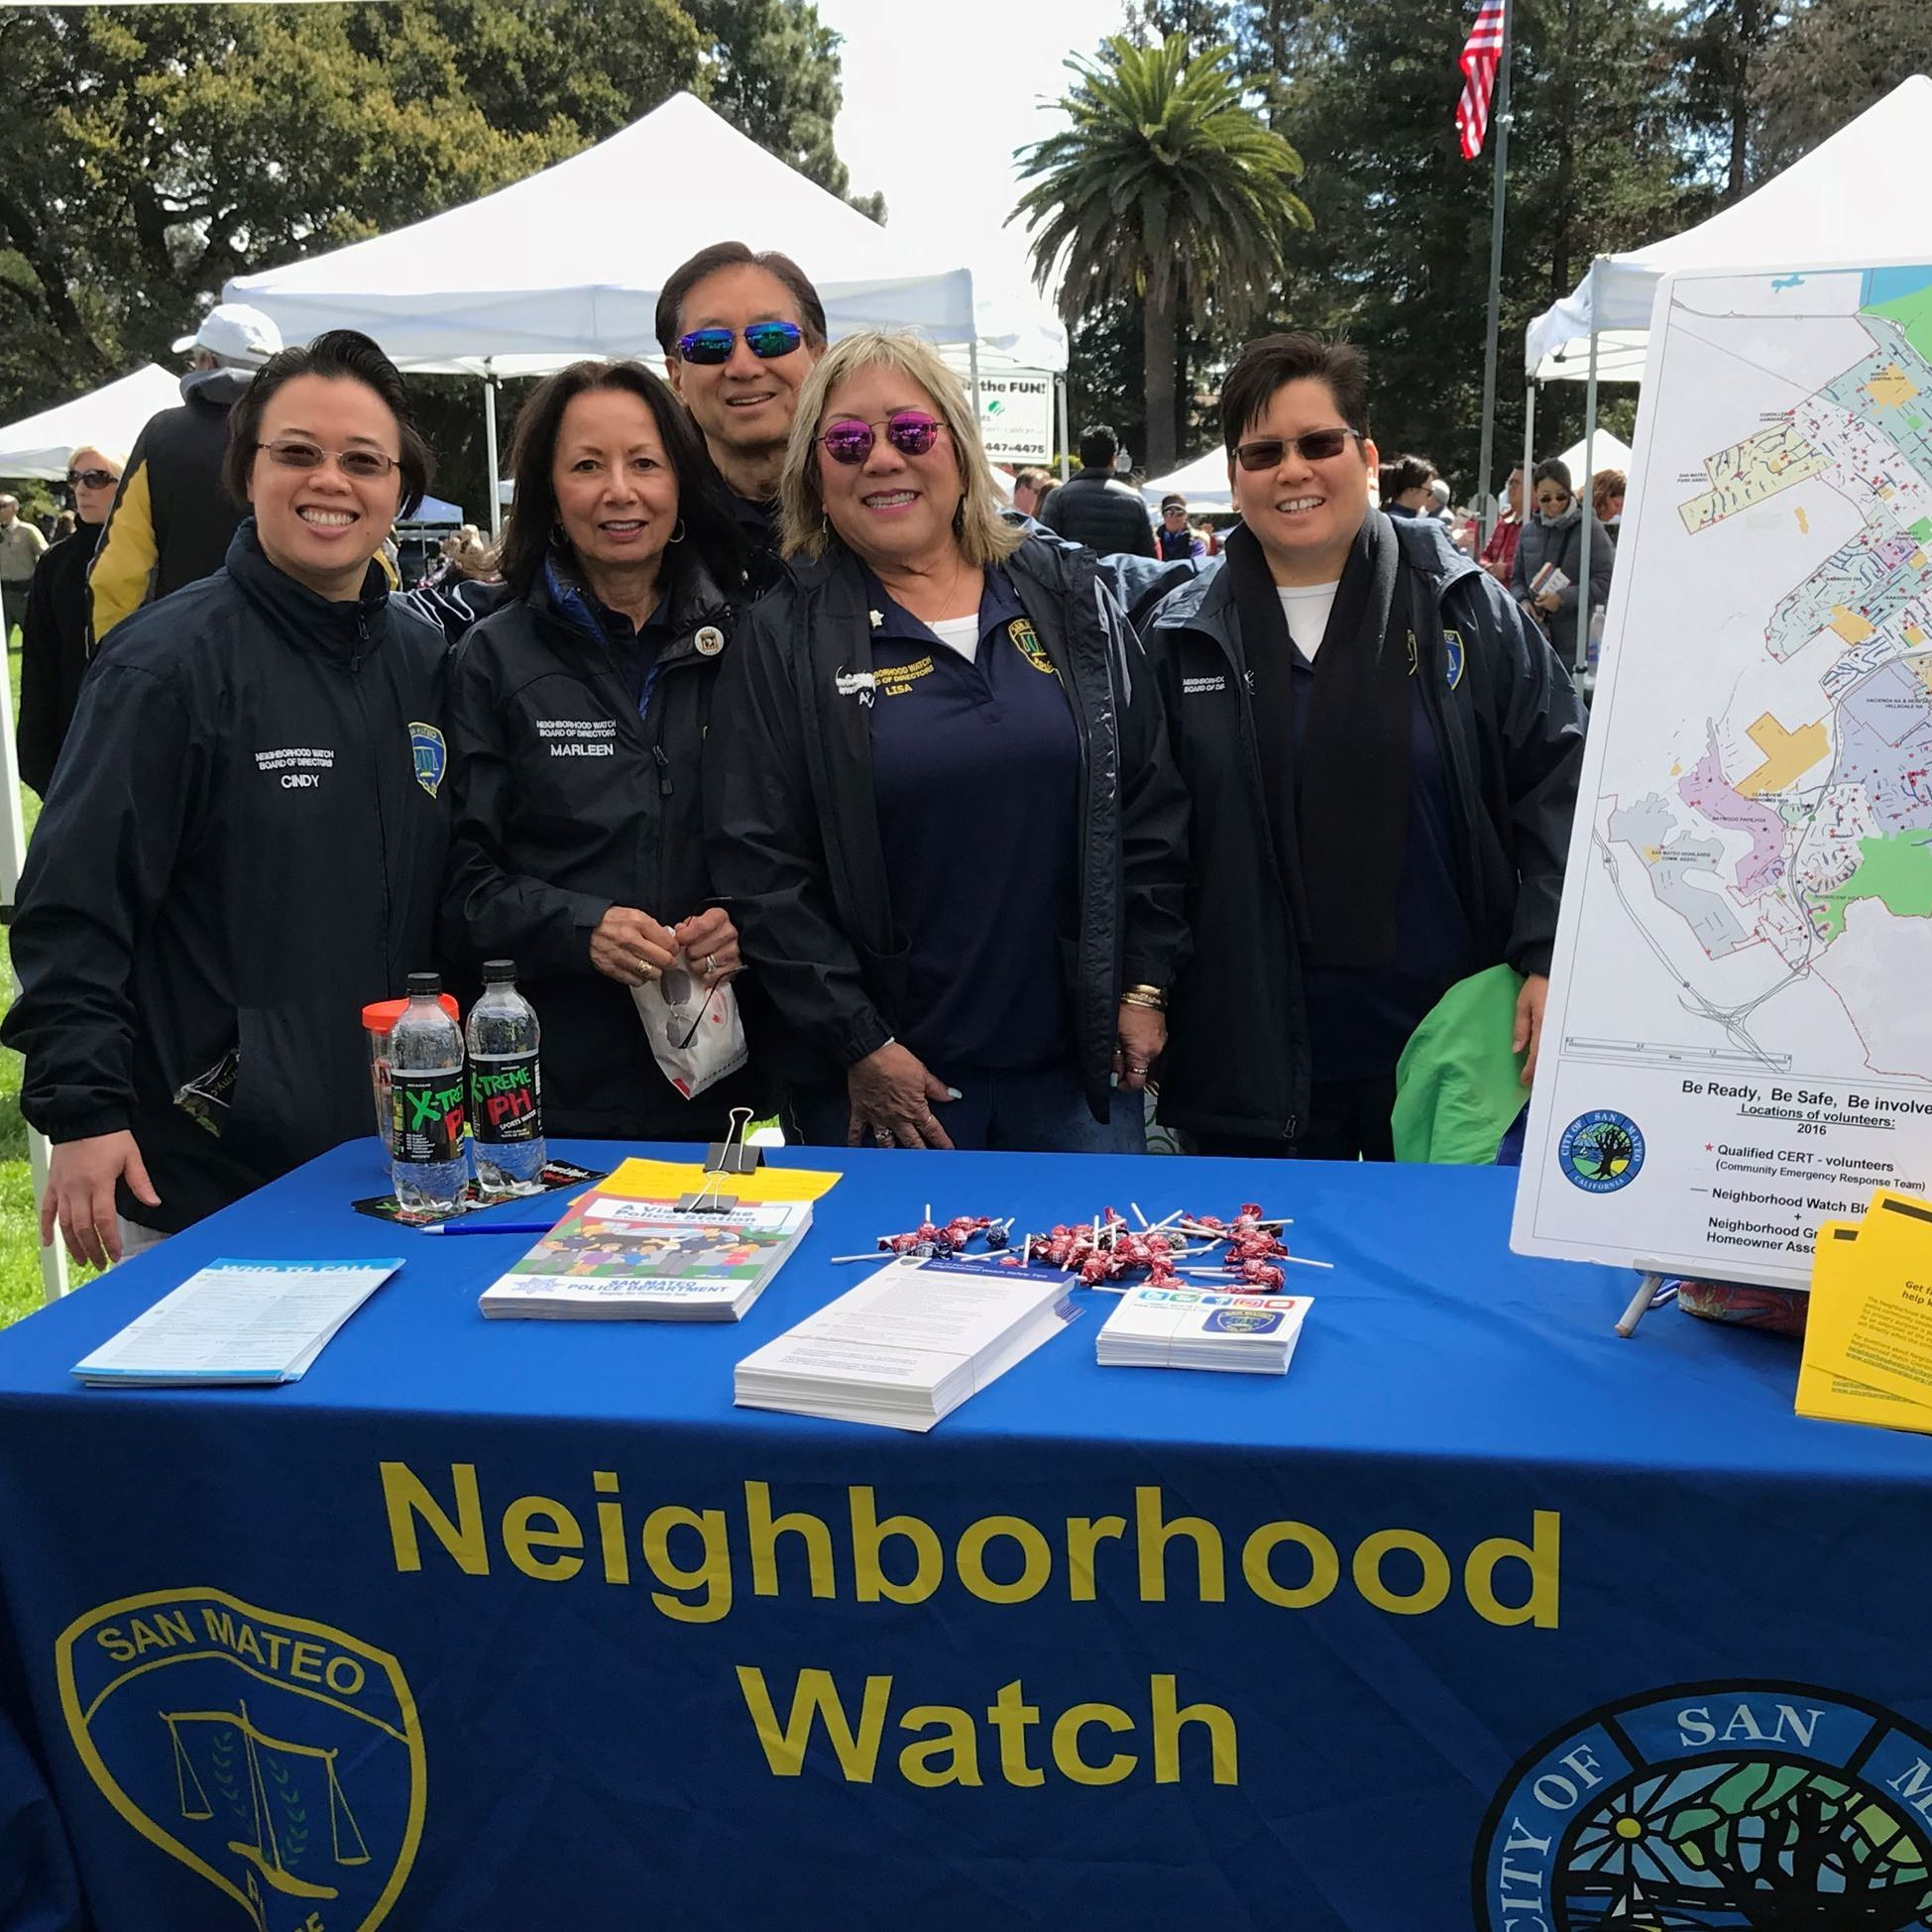 Neighborhood watch table at event.